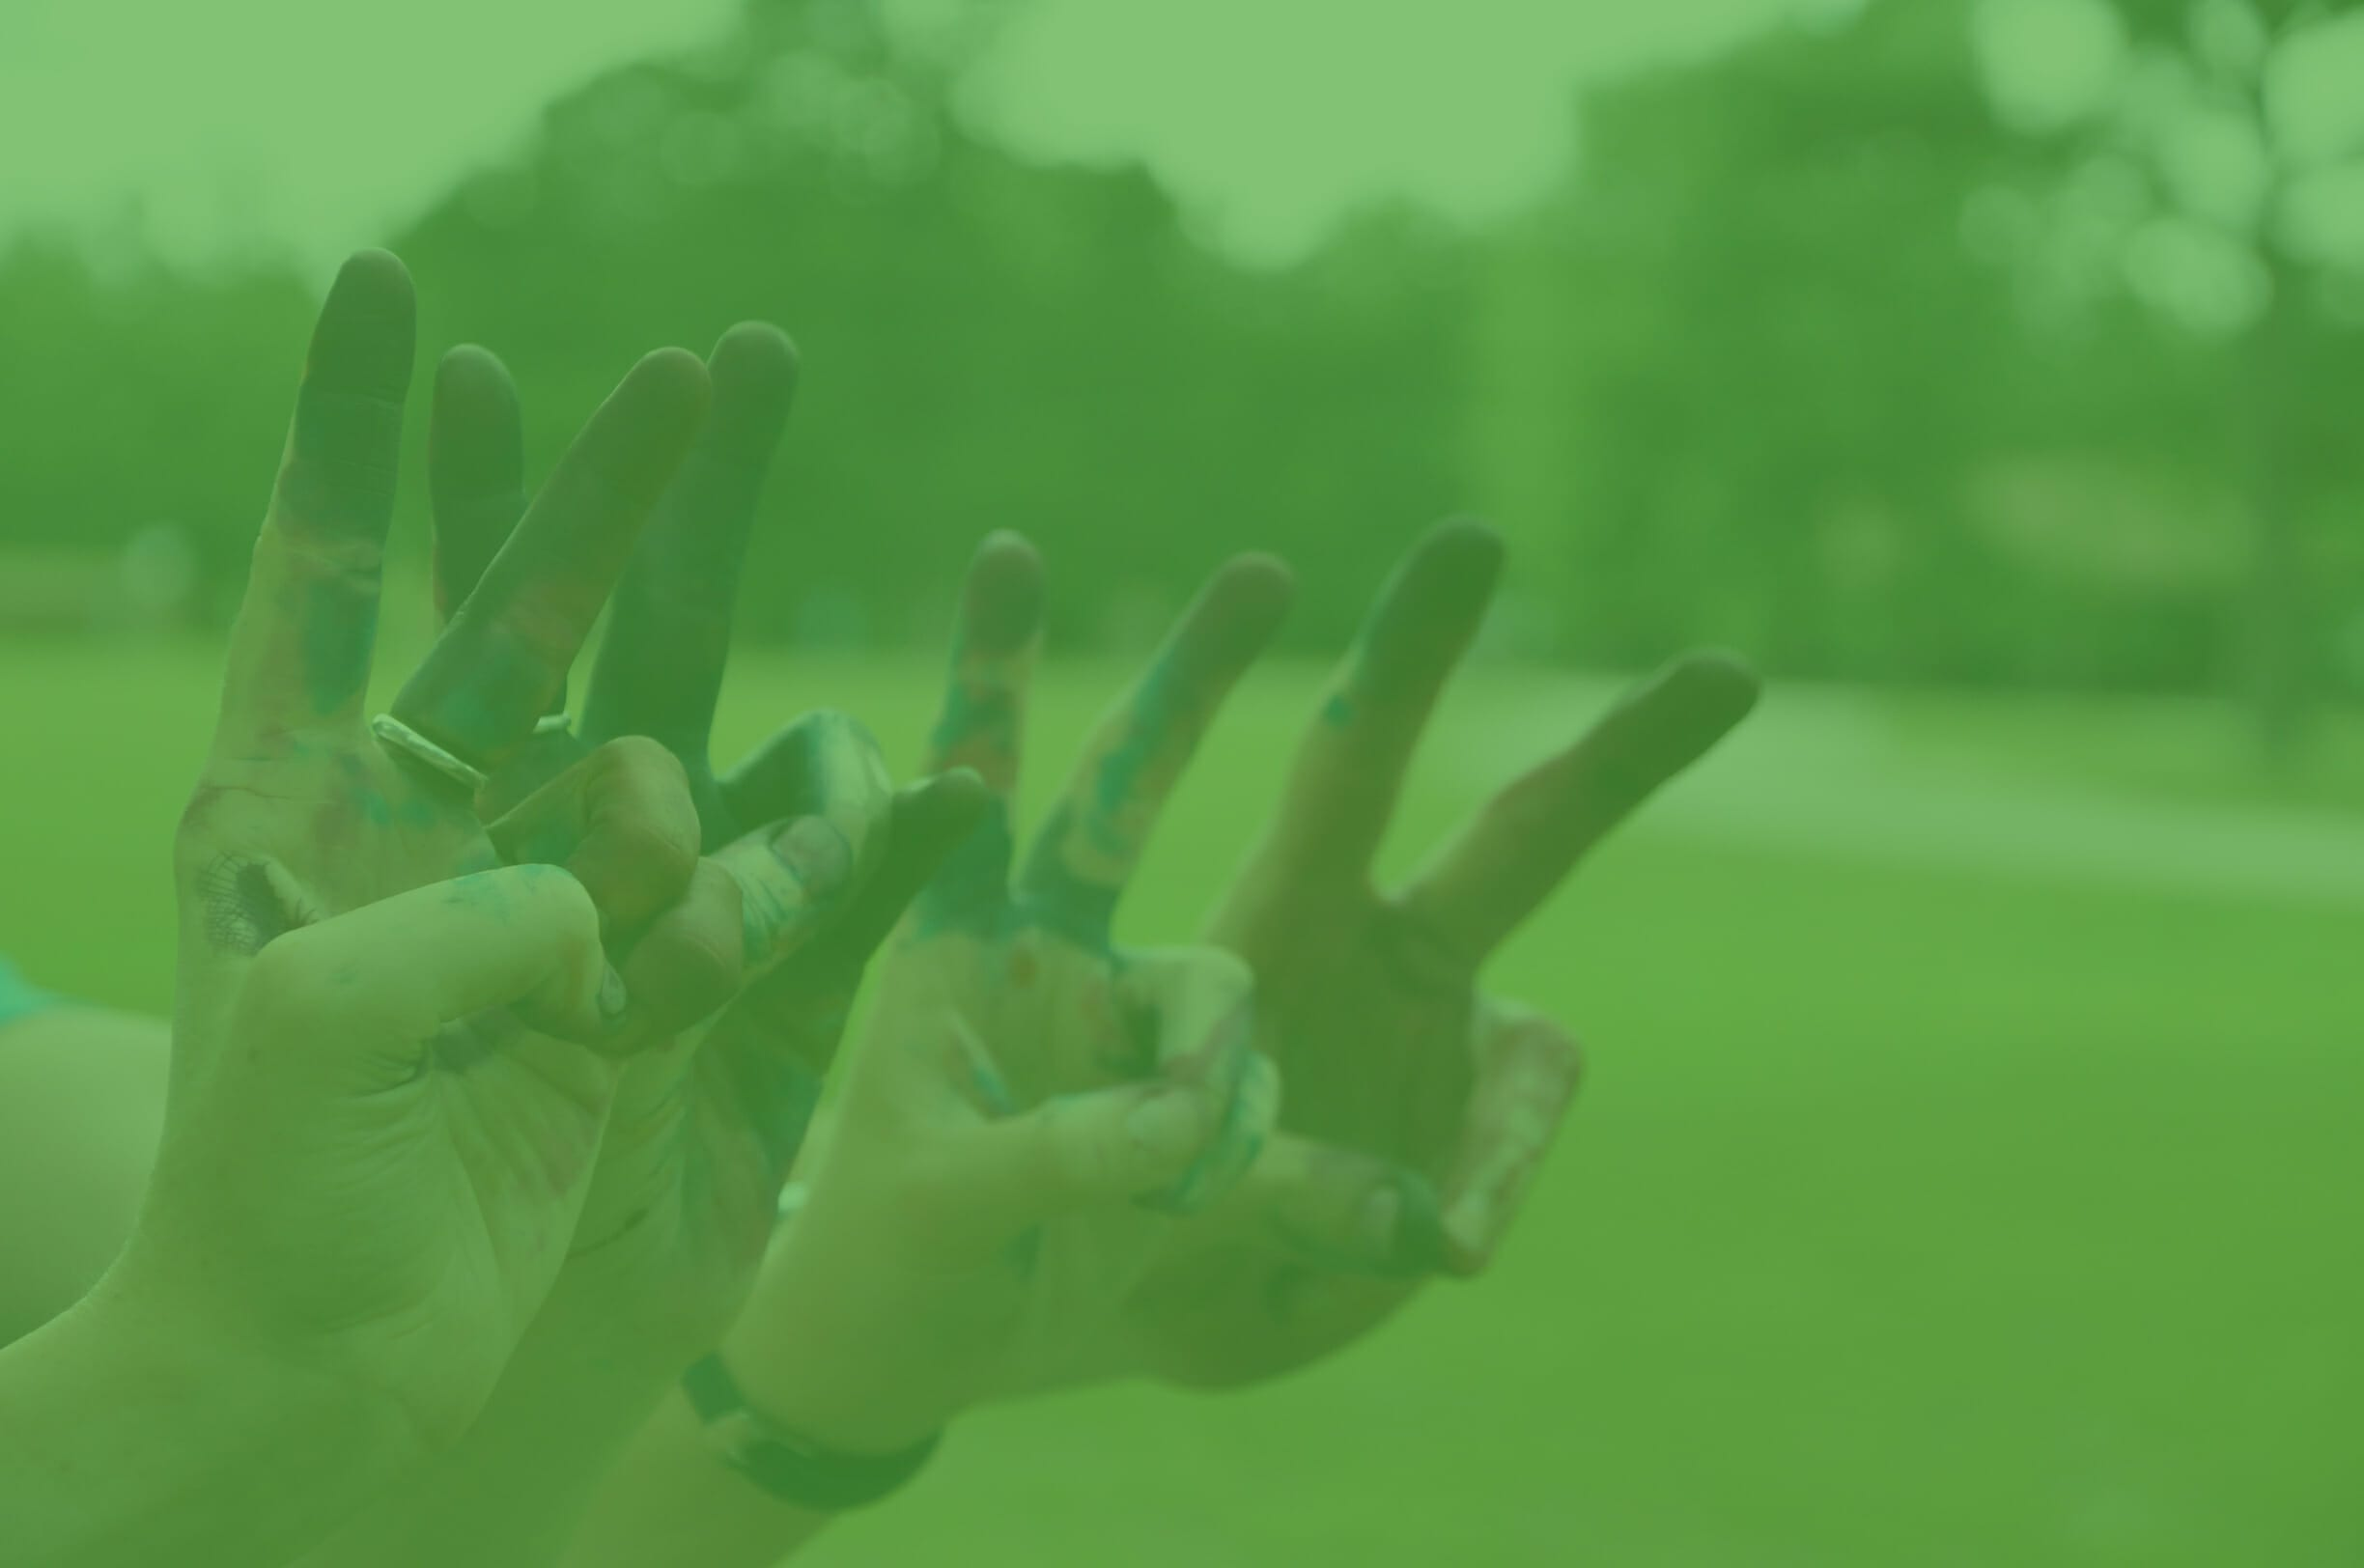 Home Page Testimonial Image - Happy camper hands giving peace sign - Cub Creek Science and Animal Camp